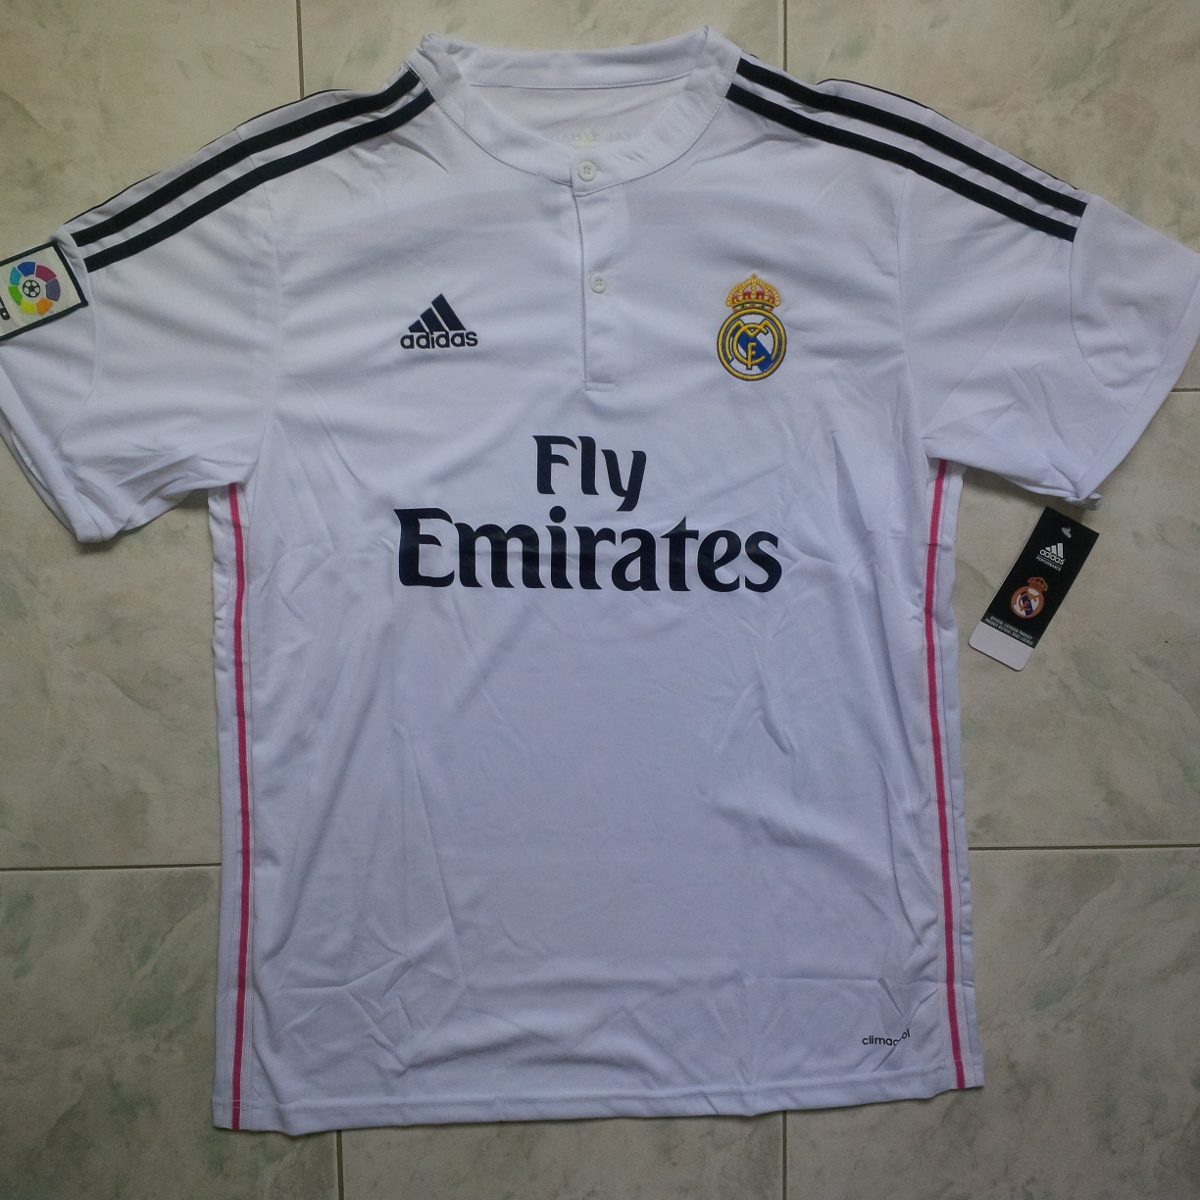 29fb29038fe84 camiseta real madrid local 2014- 2015 estampadas cr7. Cargando zoom.